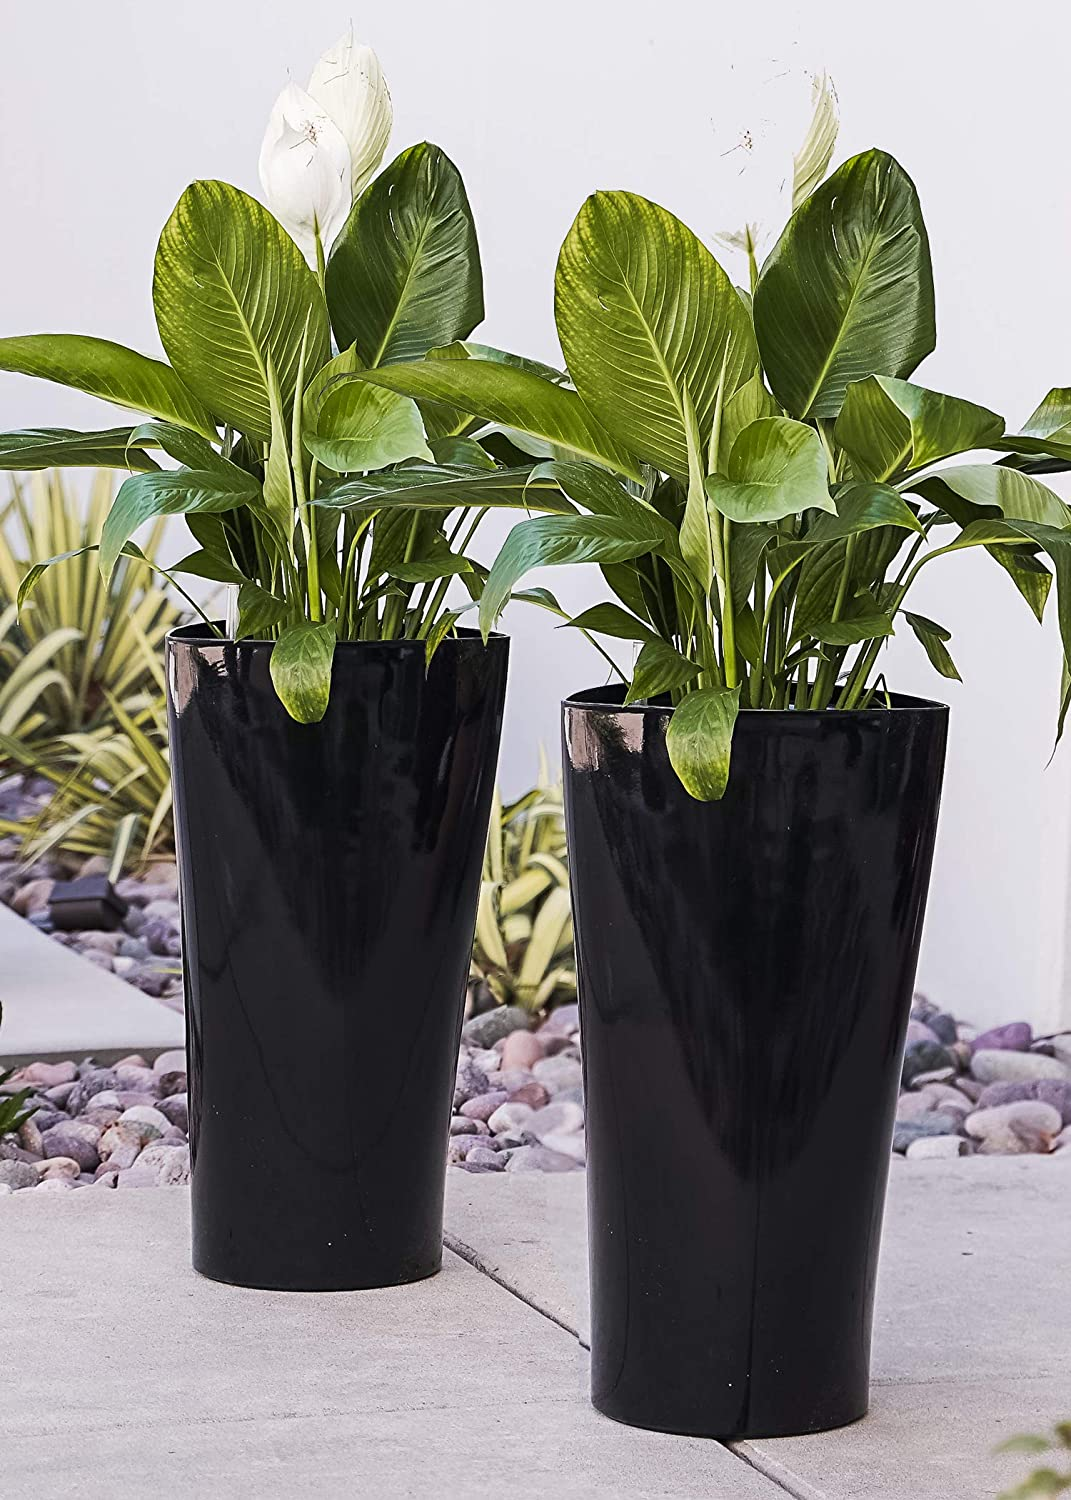 XBrand PL3479BK Nested Plastic Self Watering Indoor Outdoor Round Triangle Planter Pot w/Glossy Finish, Set of 2, 22 Inch Tall, Black